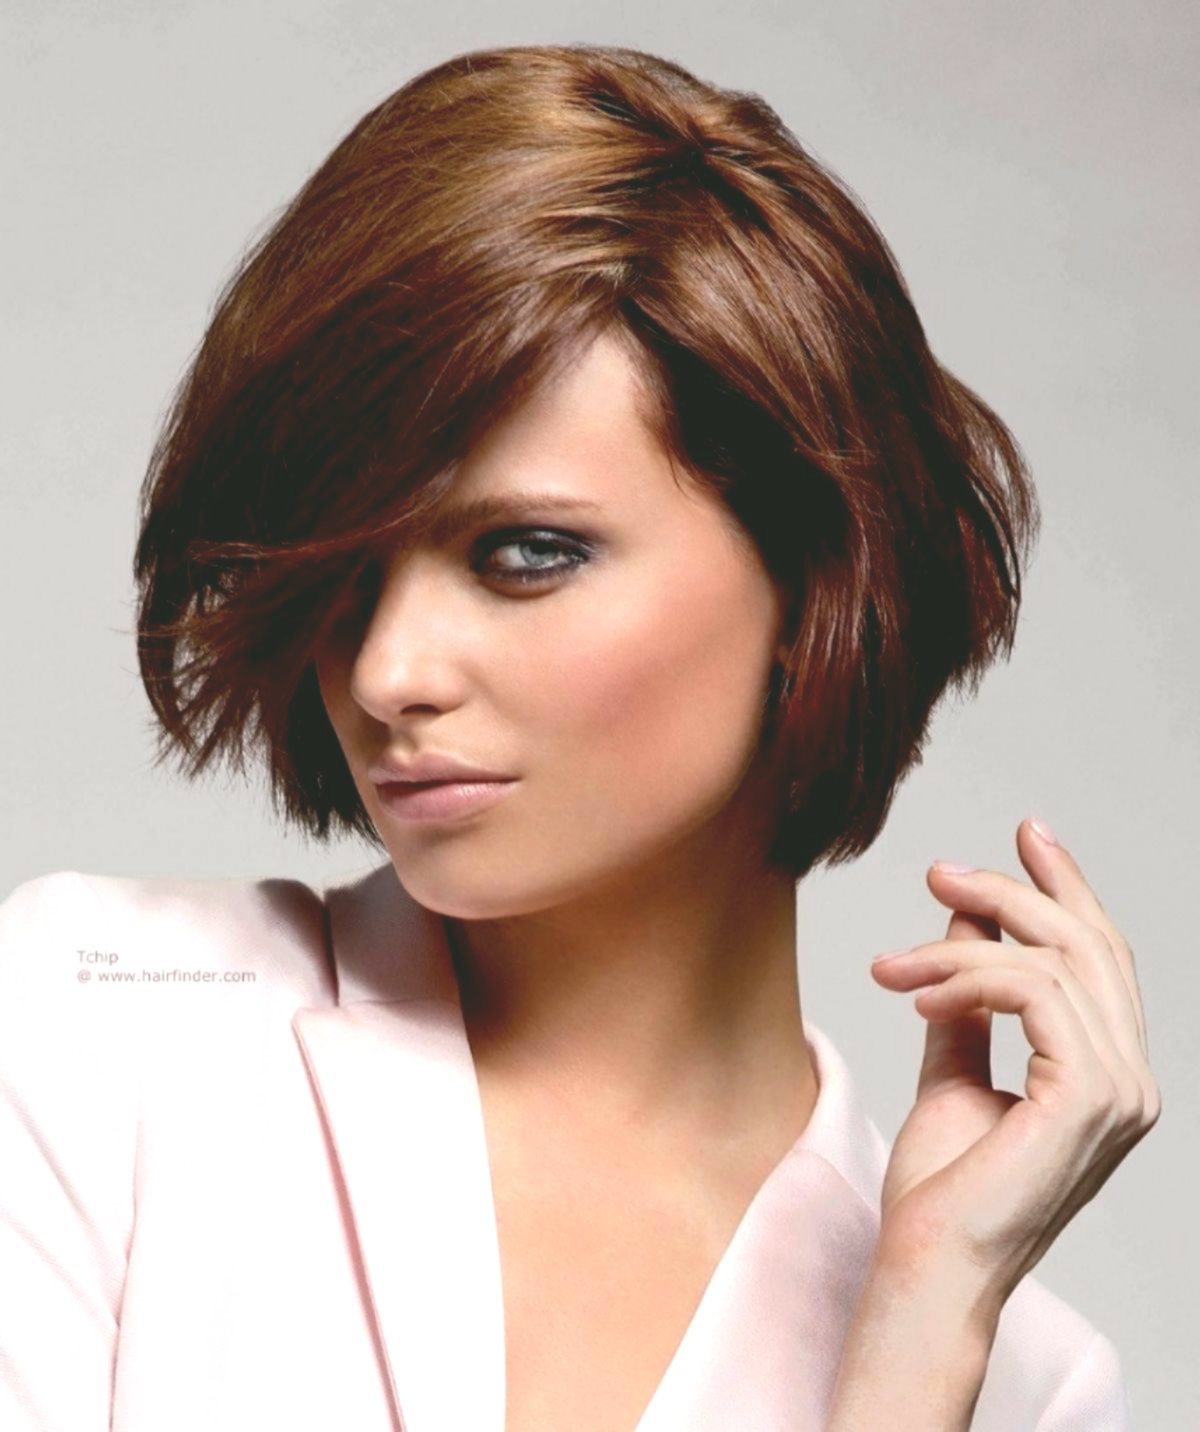 best of autumn hairstyles collection-Terrific autumn hairstyles concepts